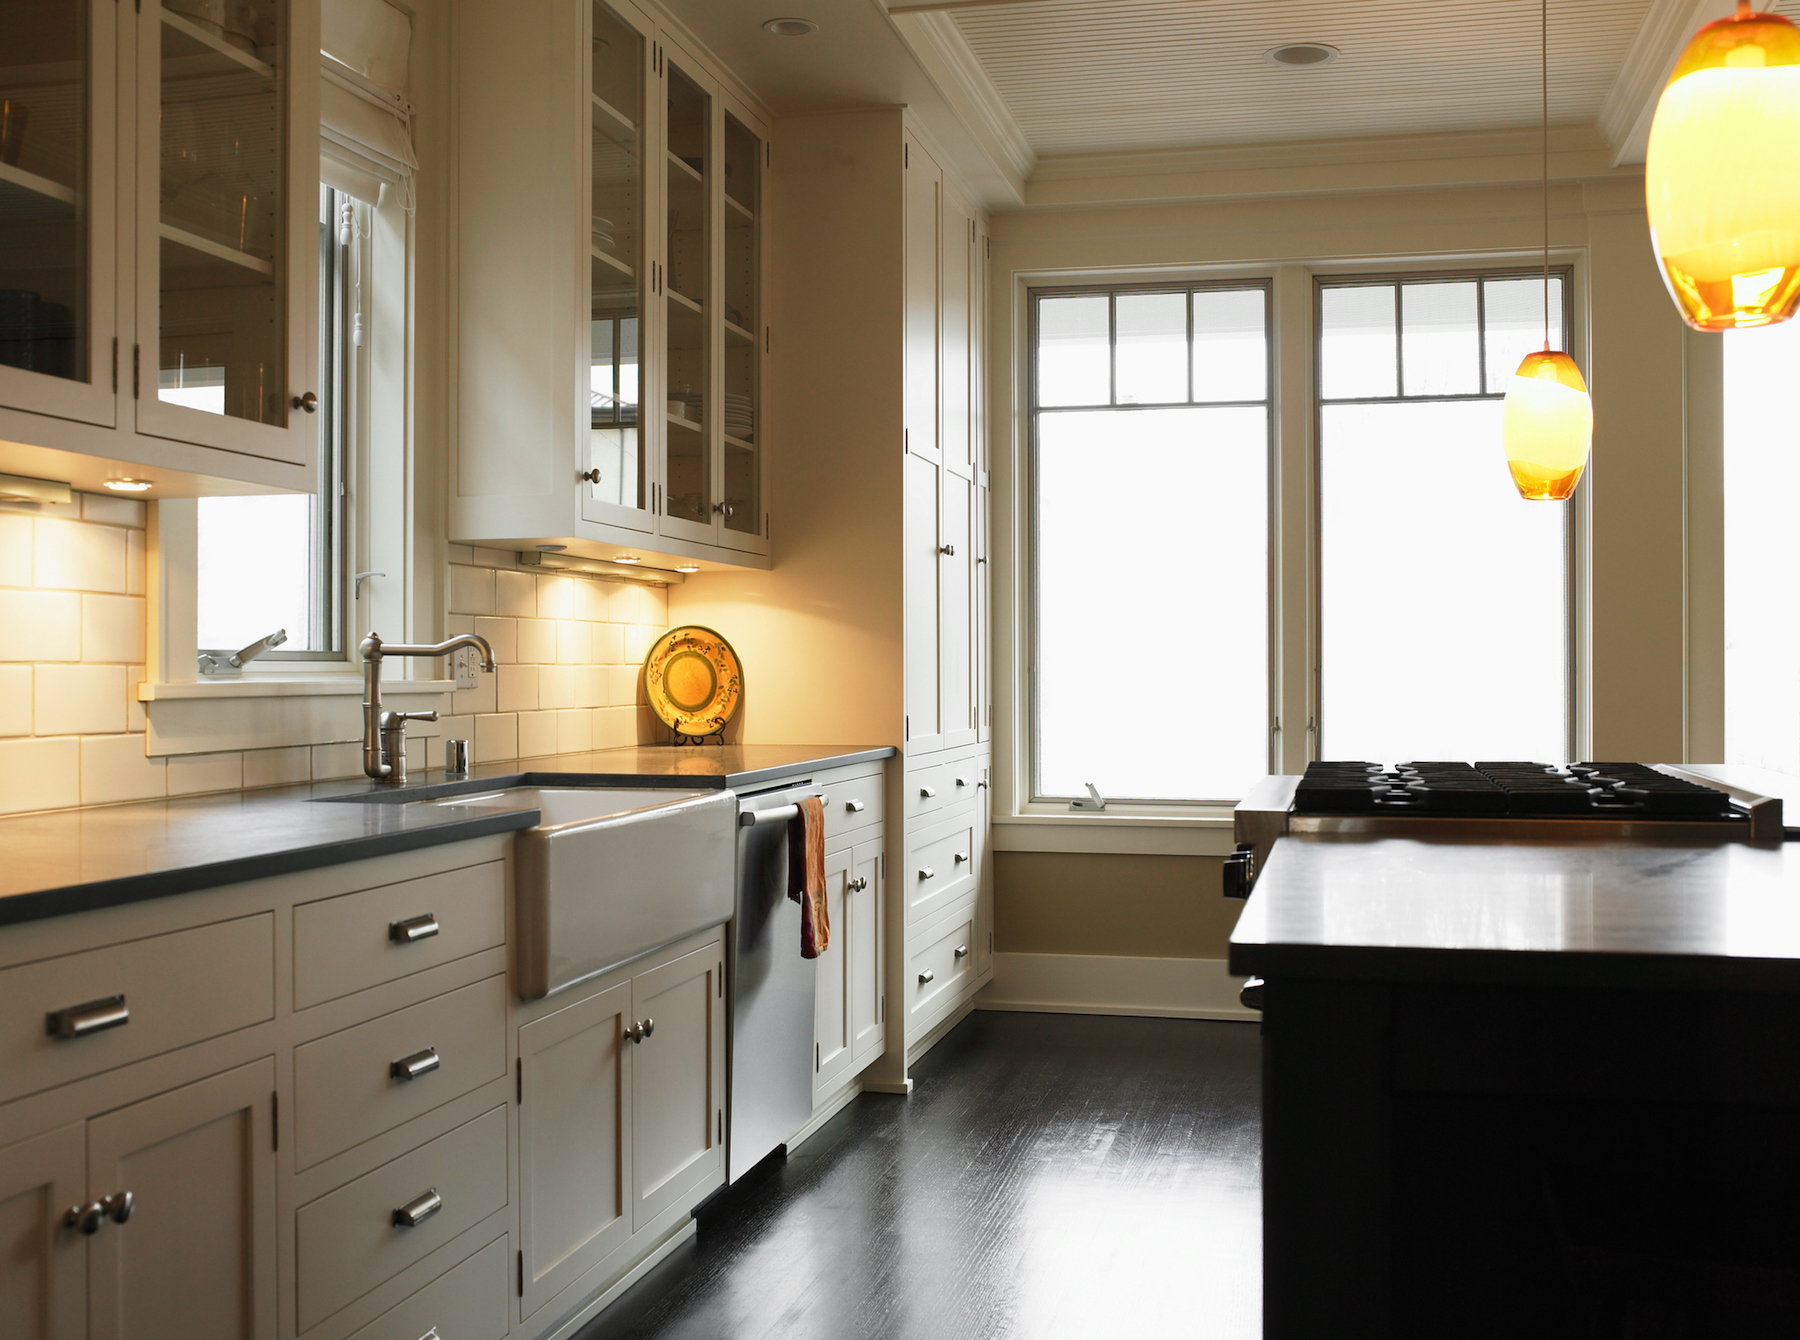 the 25 lighting hack that transformed my kitchen and didn t